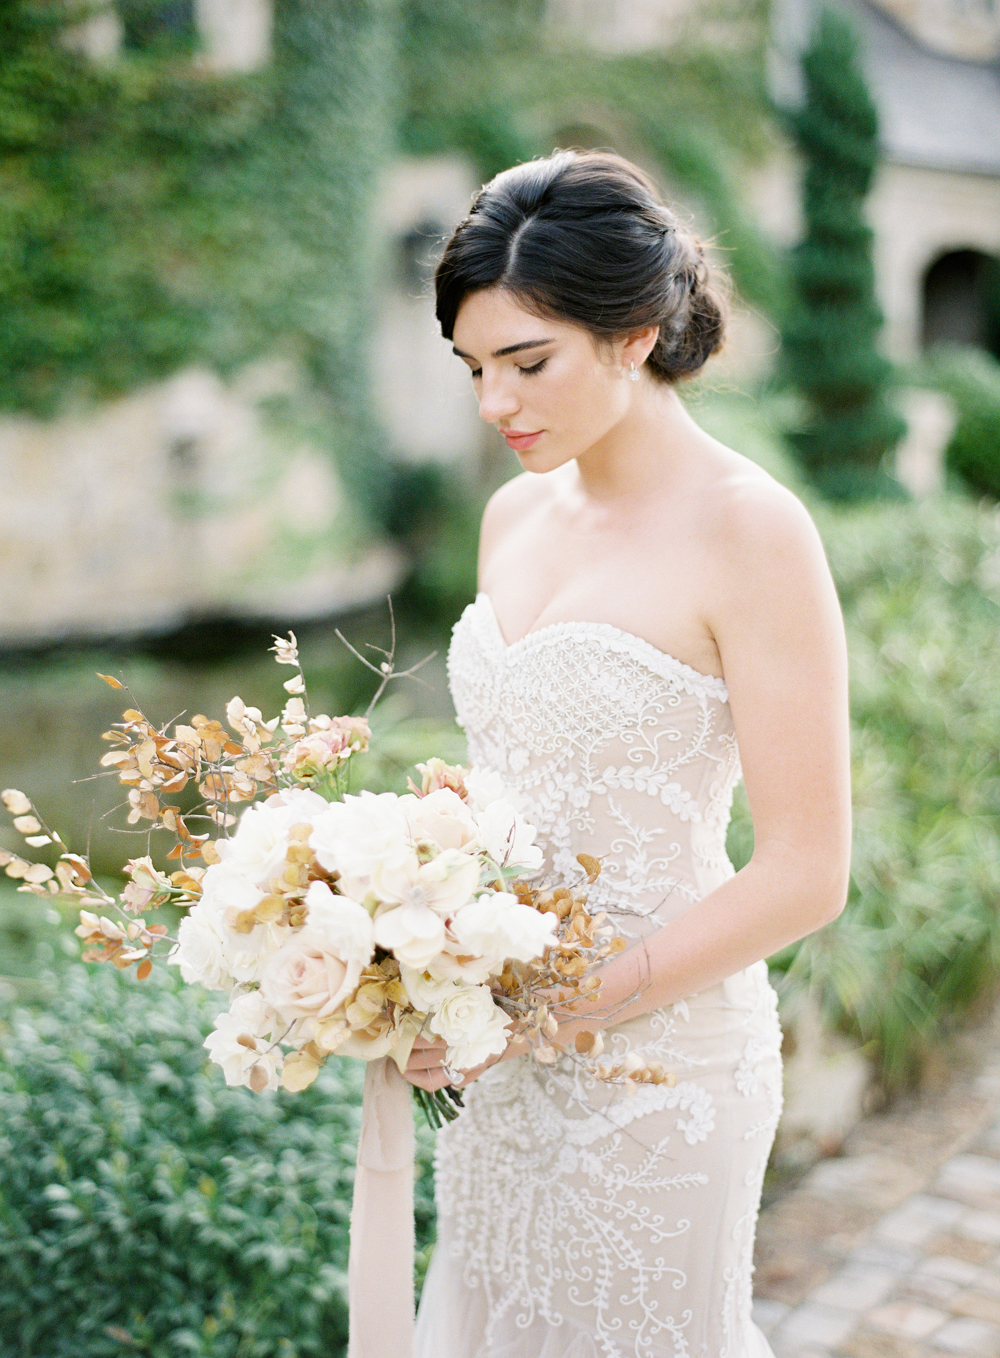 Neutral bridal bouquet by Plenty of Petals | Sachin and Babi wedding gown | Mbride | Beauty by Stacey | Luxury wedding | Hidden Castle | Rancho Santa Fe | Estate Events with Venuelust | neutral wedding | European Wedding Inspiration | French wedding | France wedding photographer | Southern California film photographer | San Diego wedding photographer | Whiskers and Willow Photography